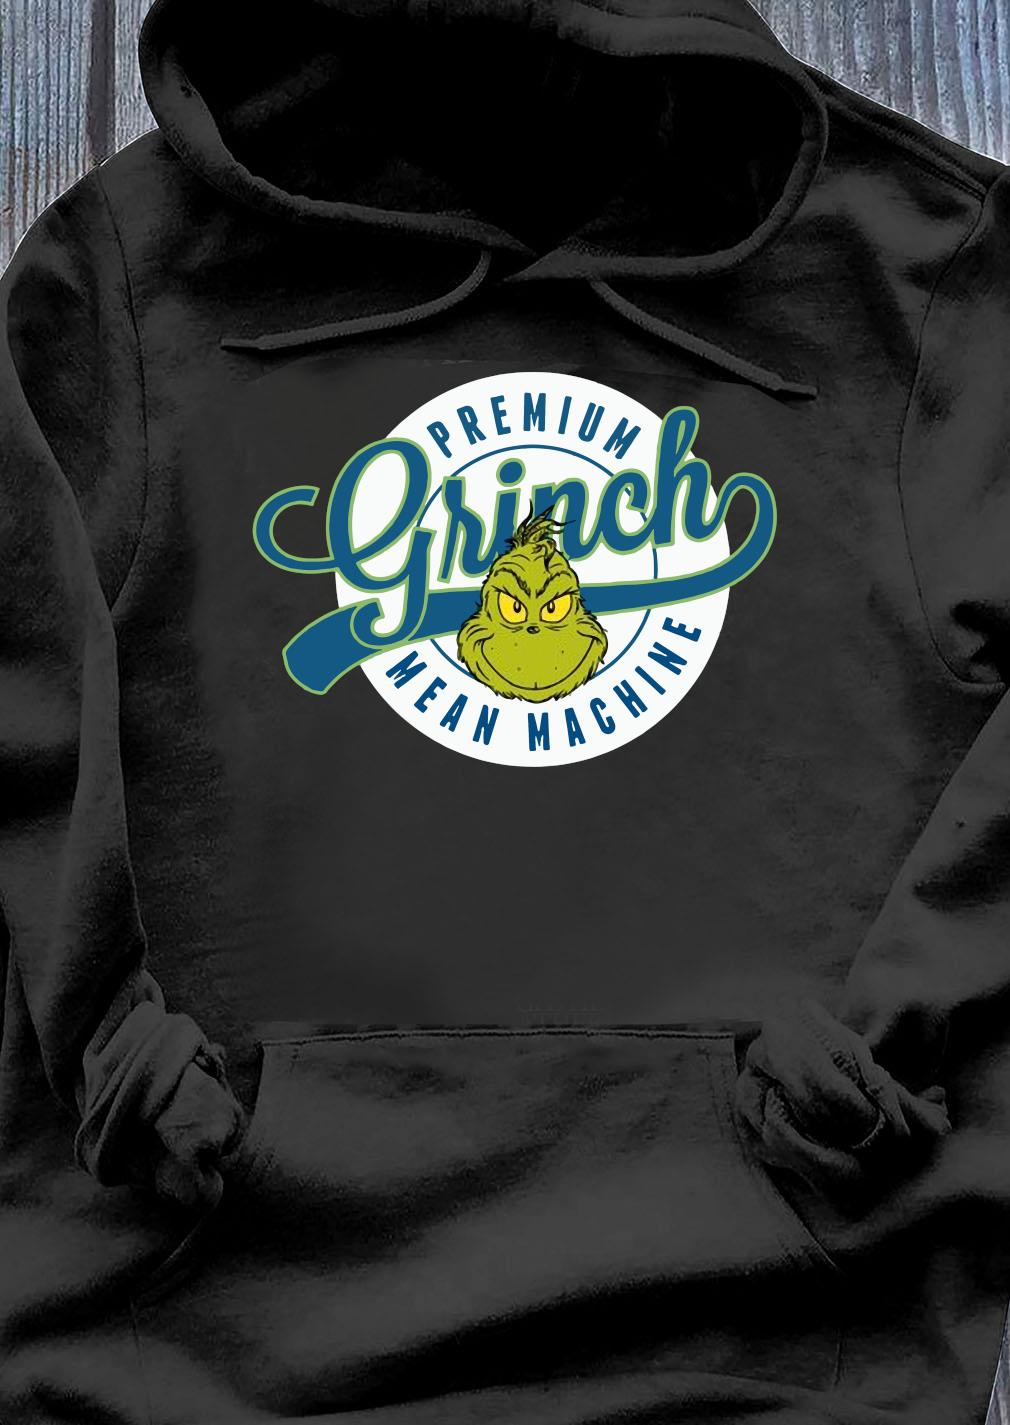 Dr. Seuss Grinch Mean Machine Pullover Shirt Hoodie